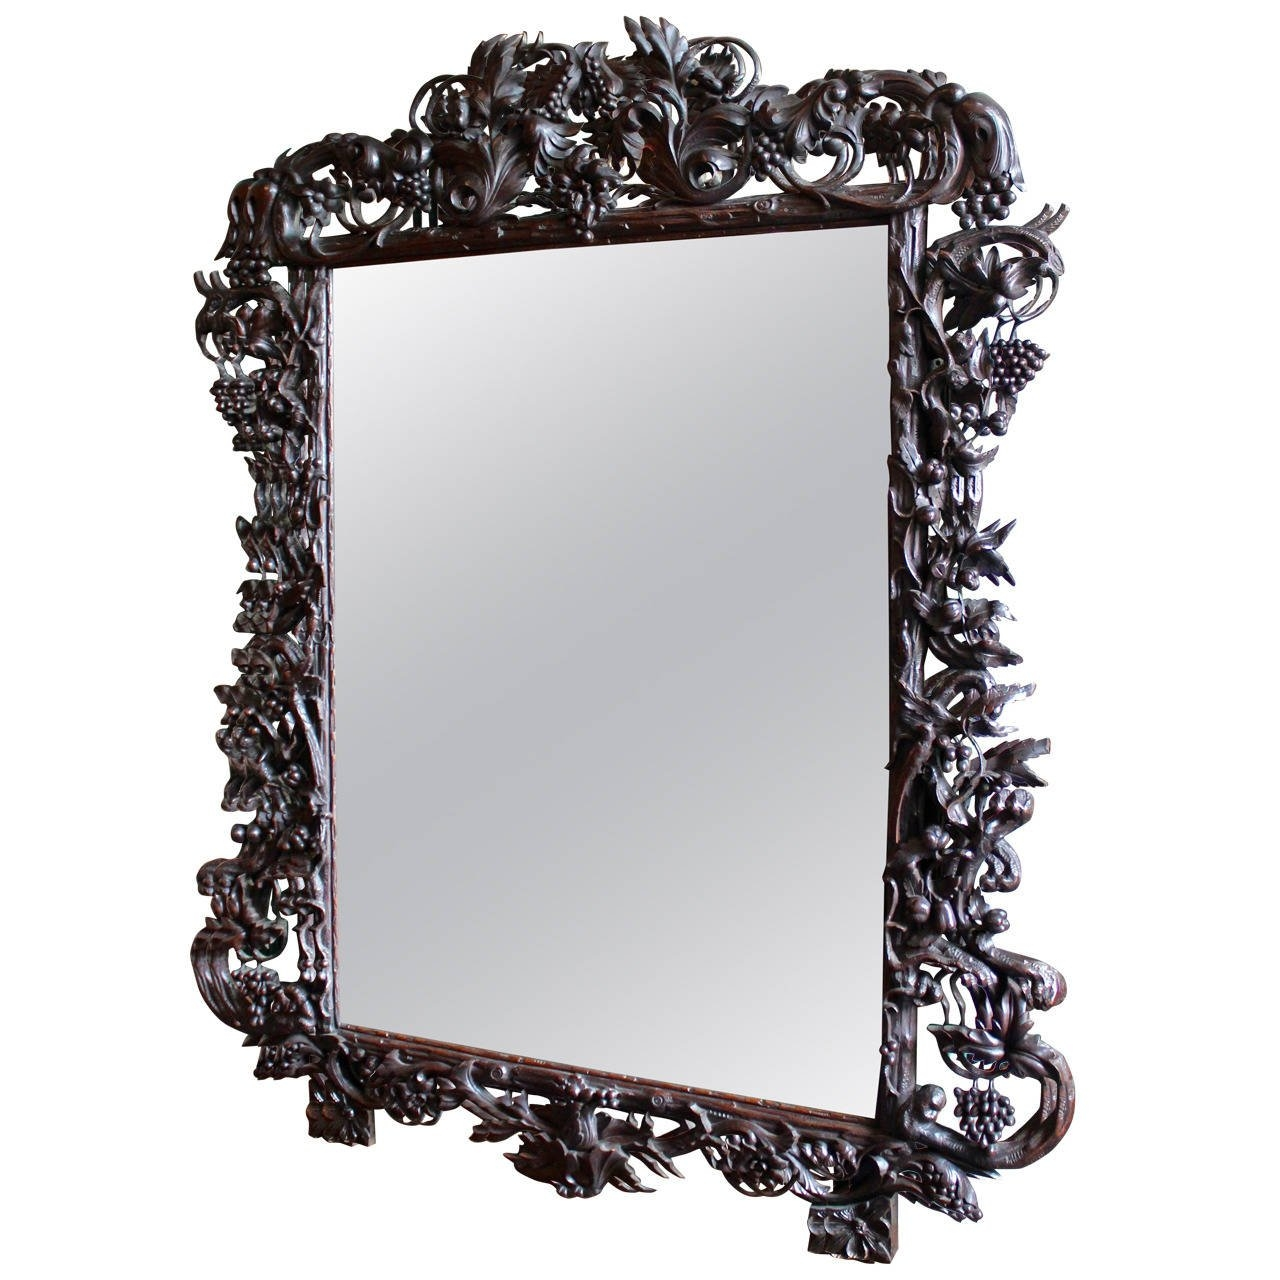 Late 19th Century Ornate Large Black Forest French Mirror At 1stdibs With Black Ornate Mirrors (Image 8 of 15)